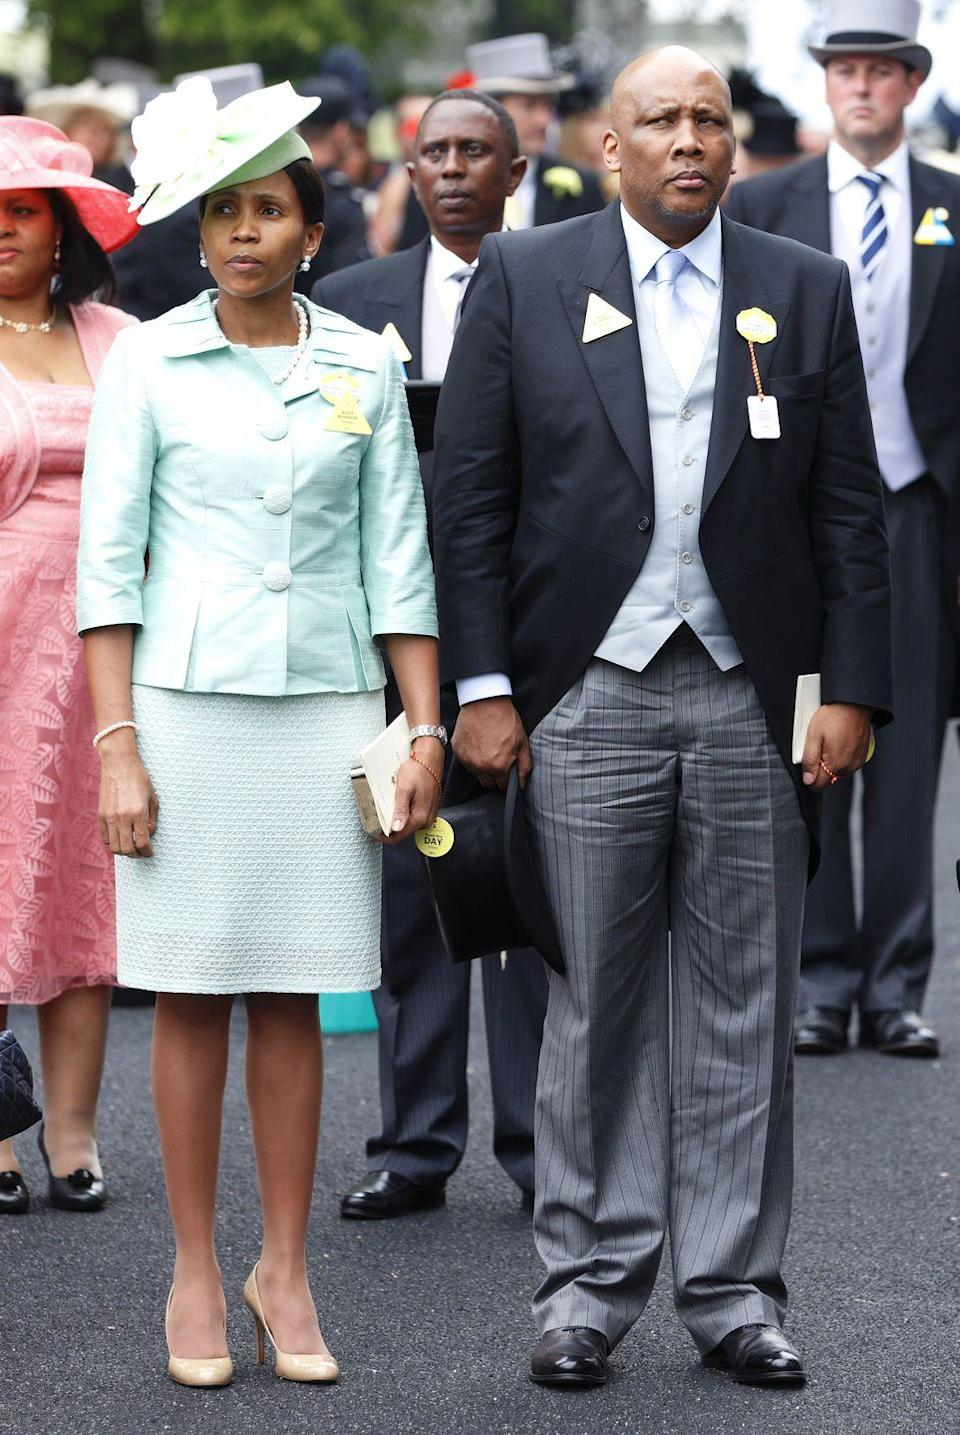 <p>Seeiso and King Letsie III of Lesotho became engaged she was still attending National University of Lesotho. Queen 'Masenate is involved with charity work and public health, known for her work in fighting HIV/AIDS and working with orphanages. </p>